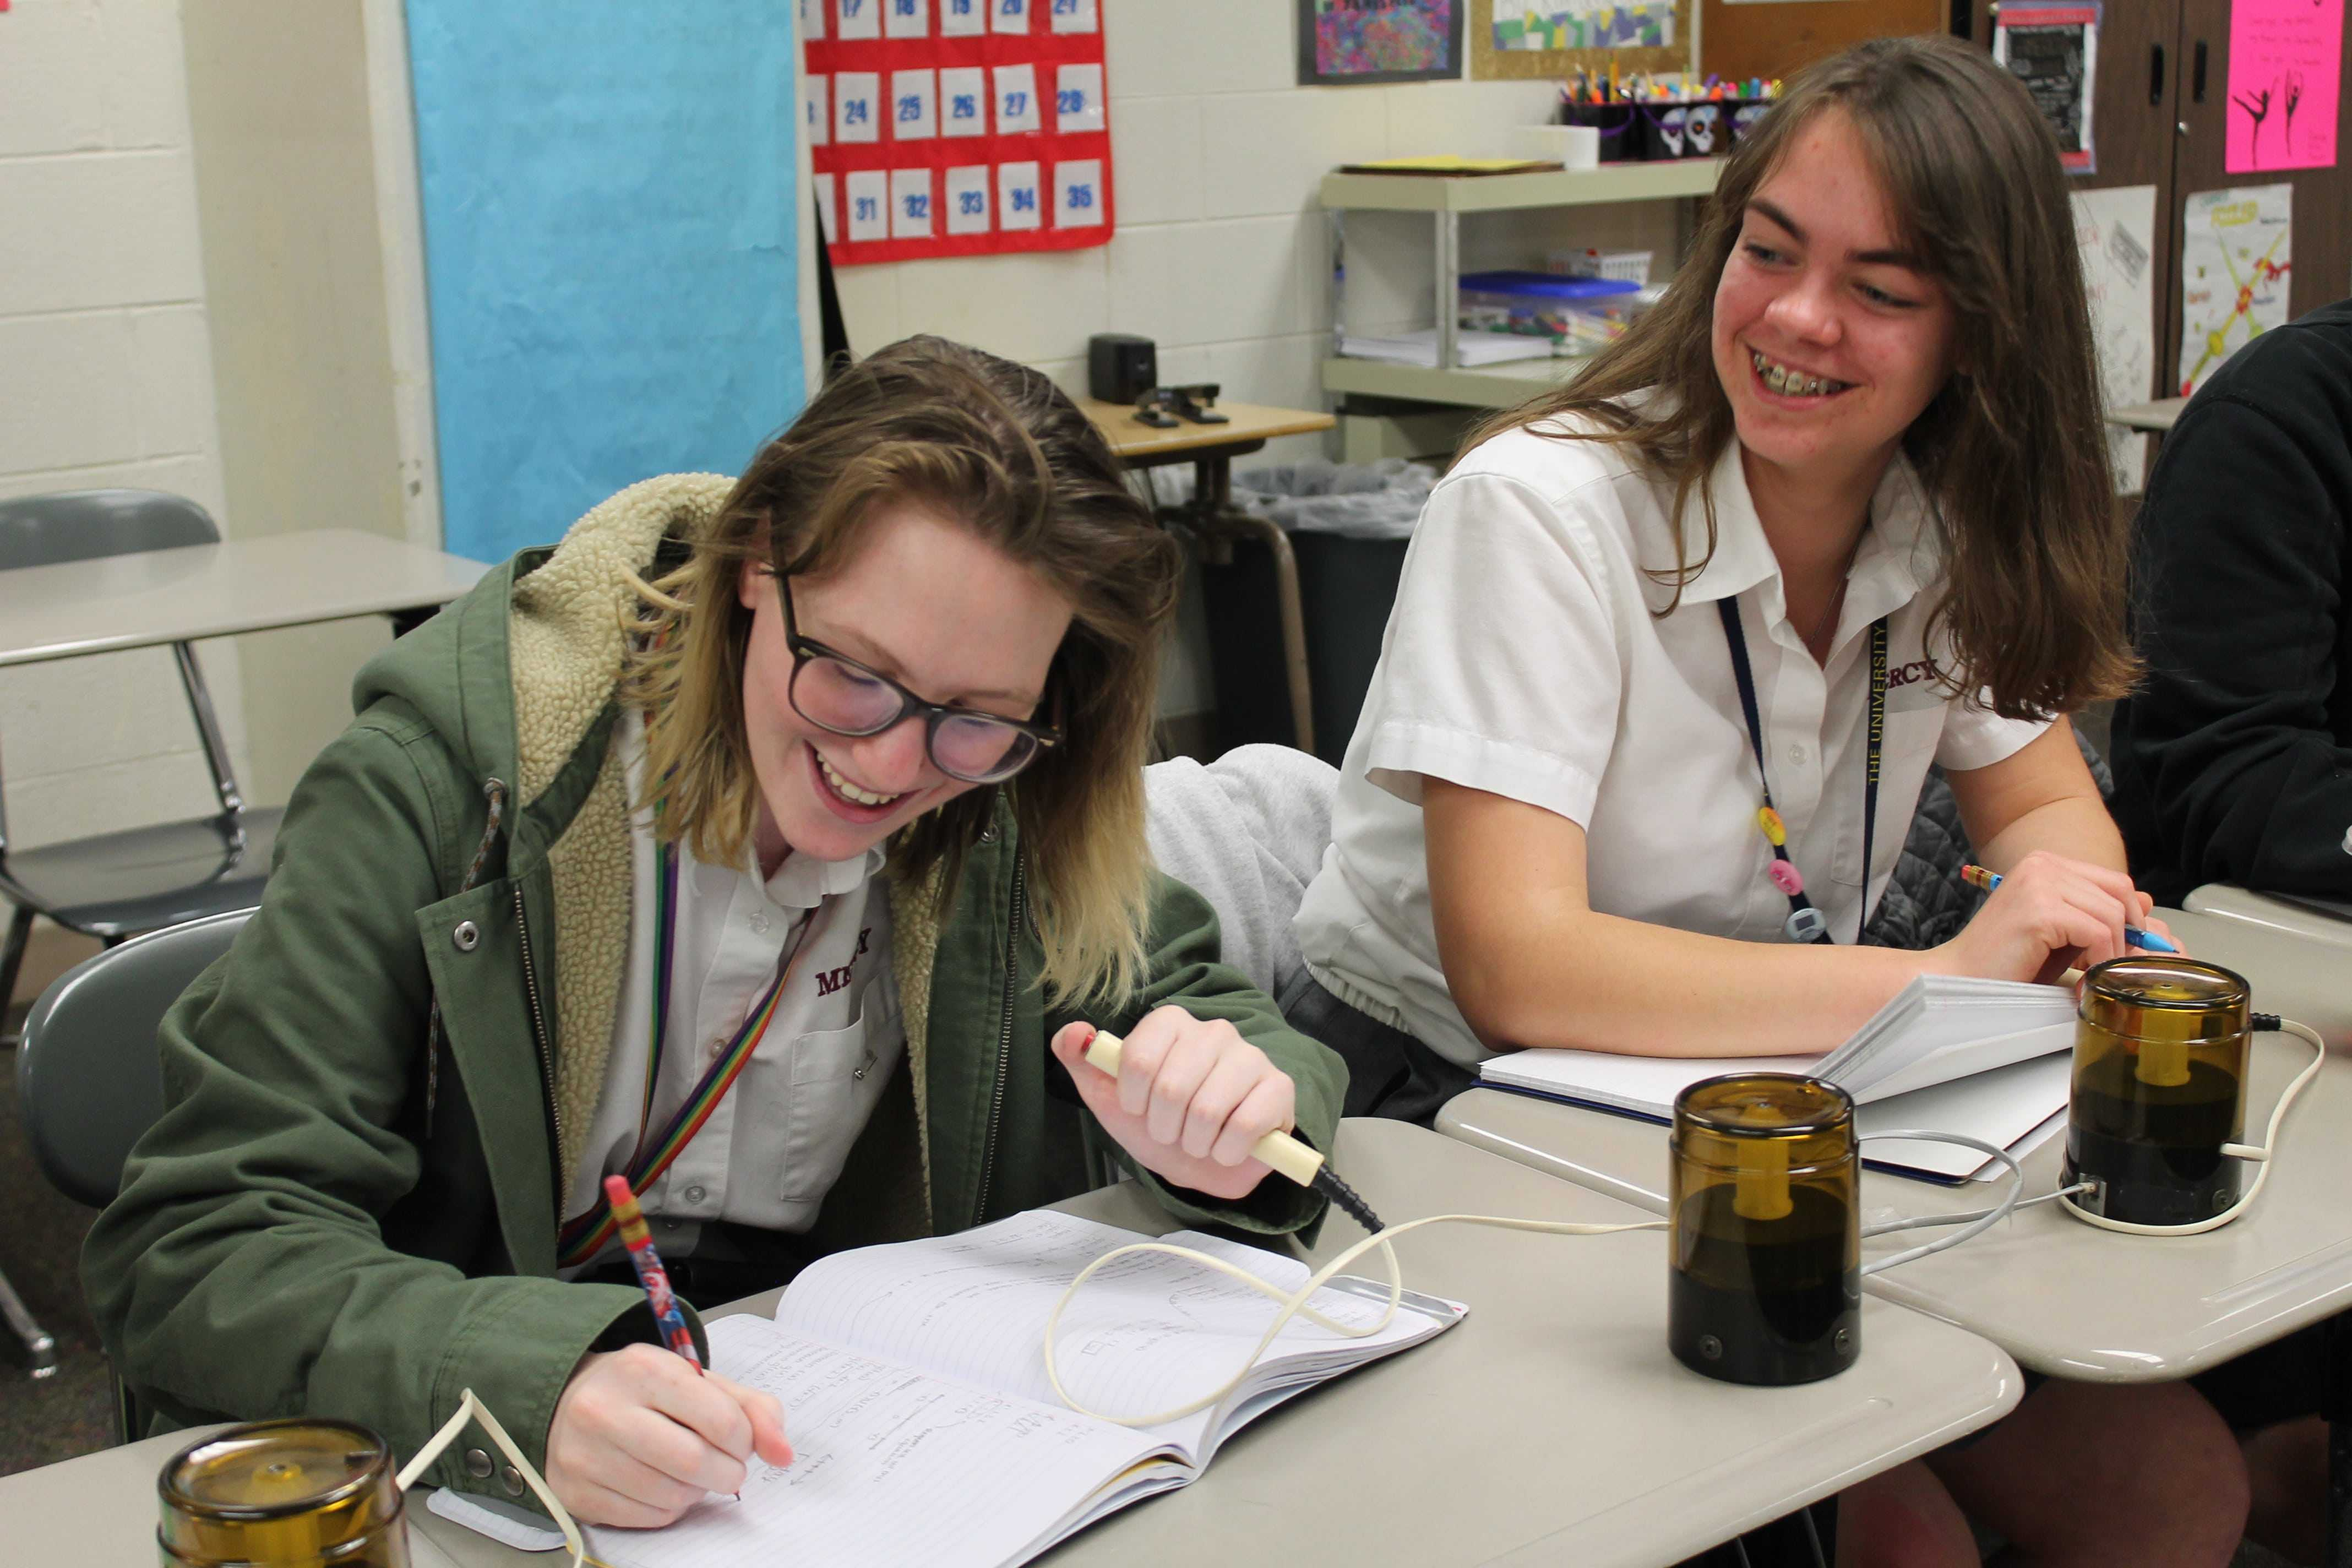 Senior Grace Salzeider uses her buzzer to signal that she has an answer to the question asked. (Photo Credit: Clarisa Russenberger)